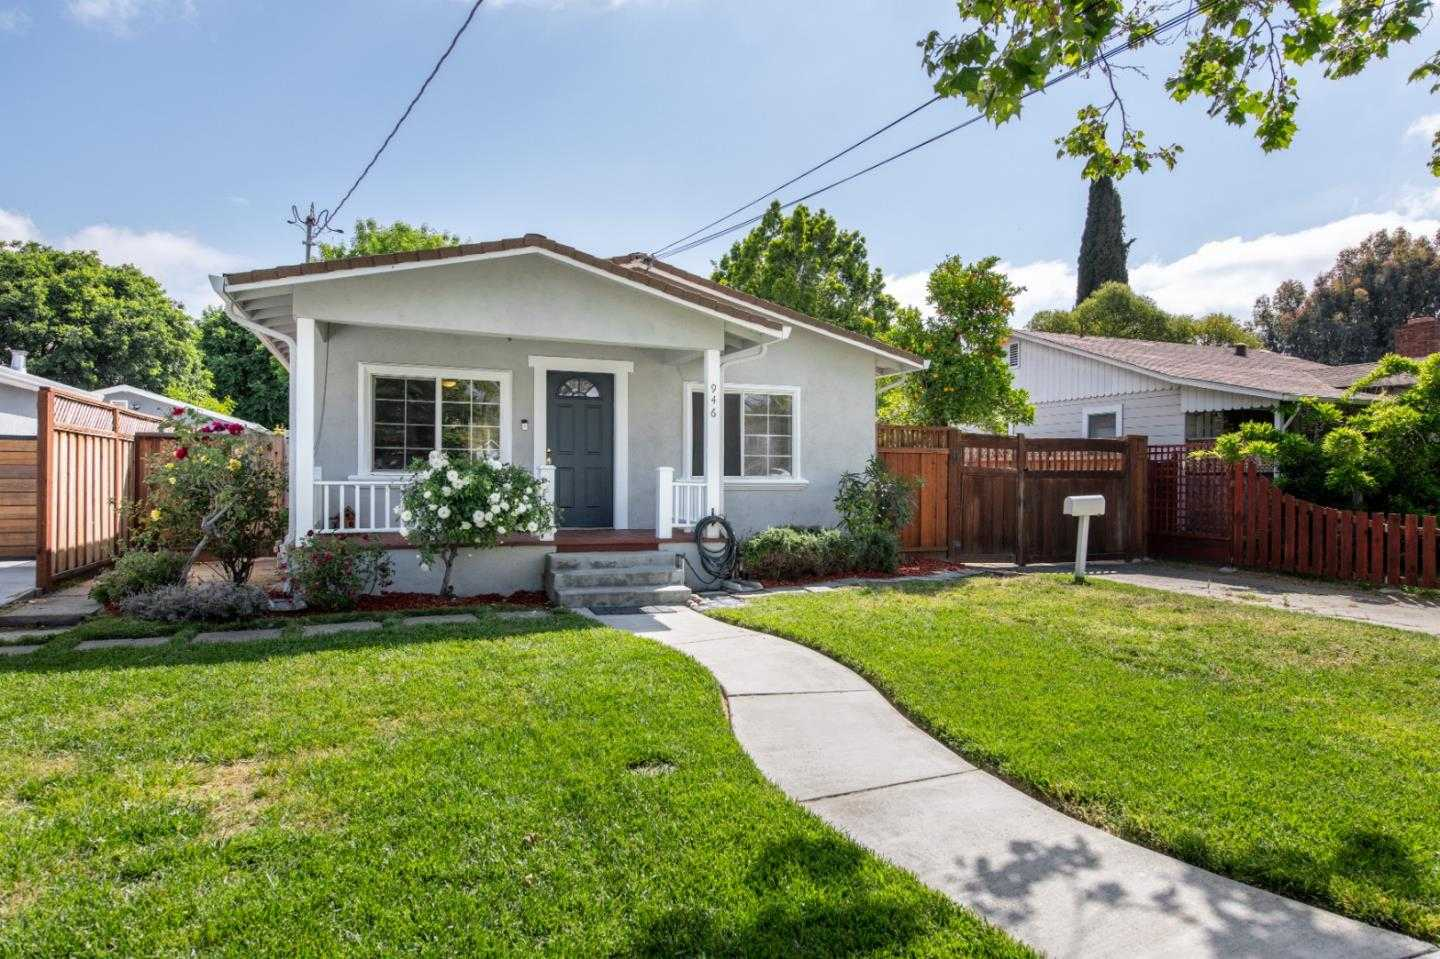 $988,000 - 4Br/2Ba -  for Sale in San Jose